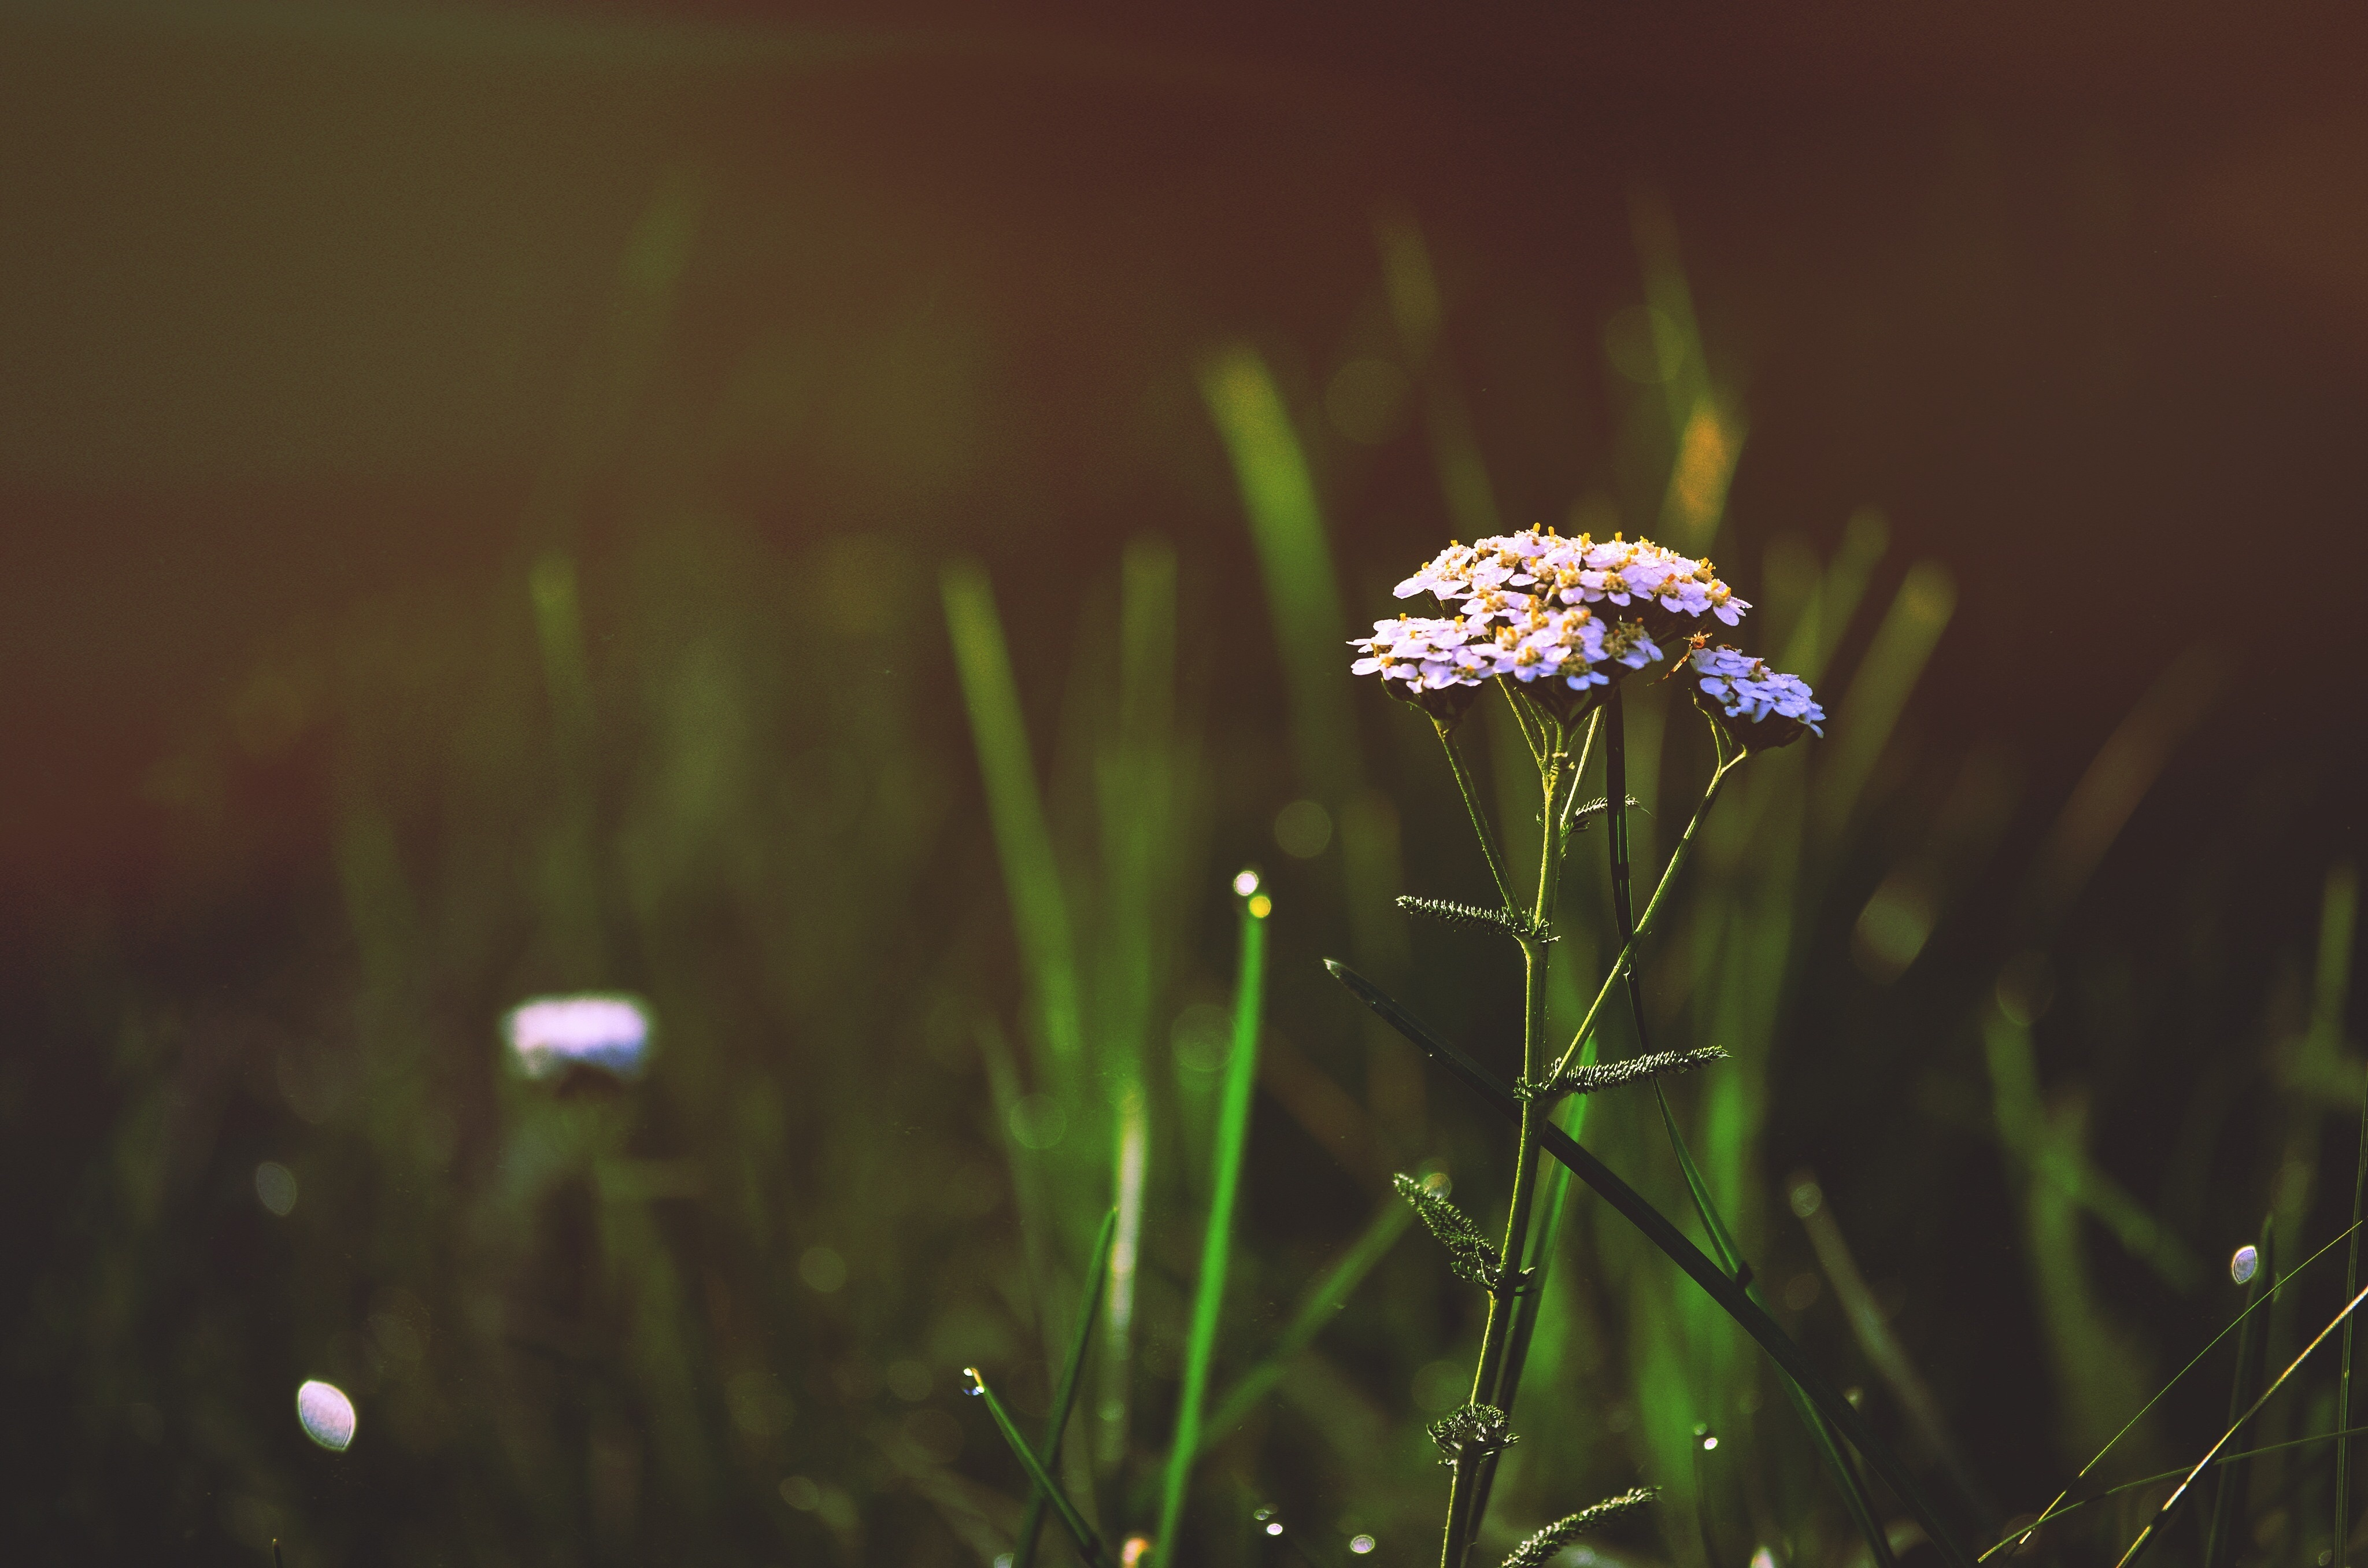 Flowers in the morning dew, morning dew, flowers, bouquet, country, dawn